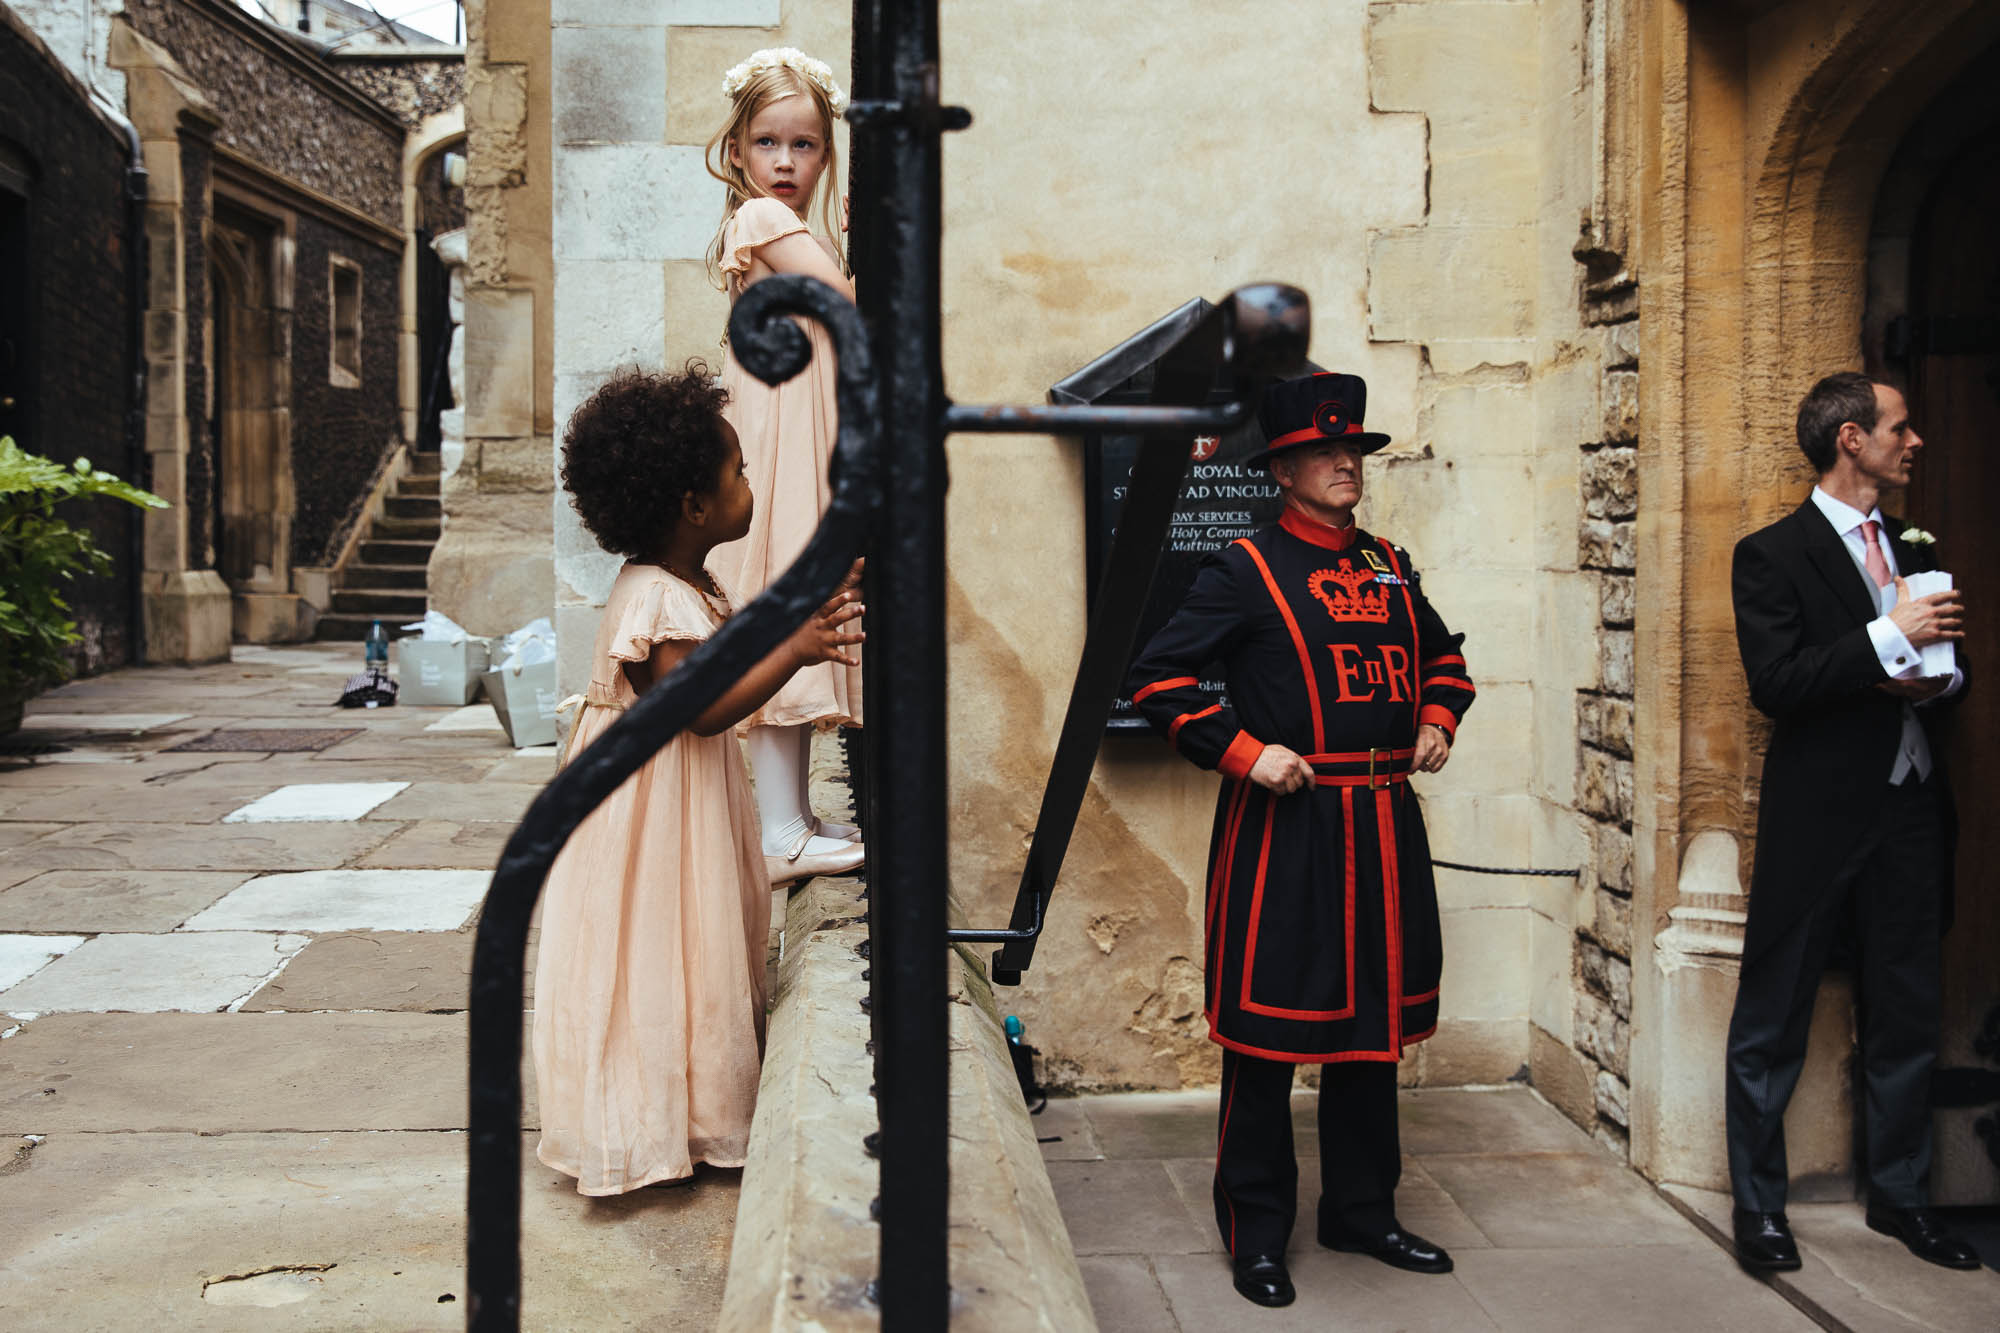 wedding at the Tower of London